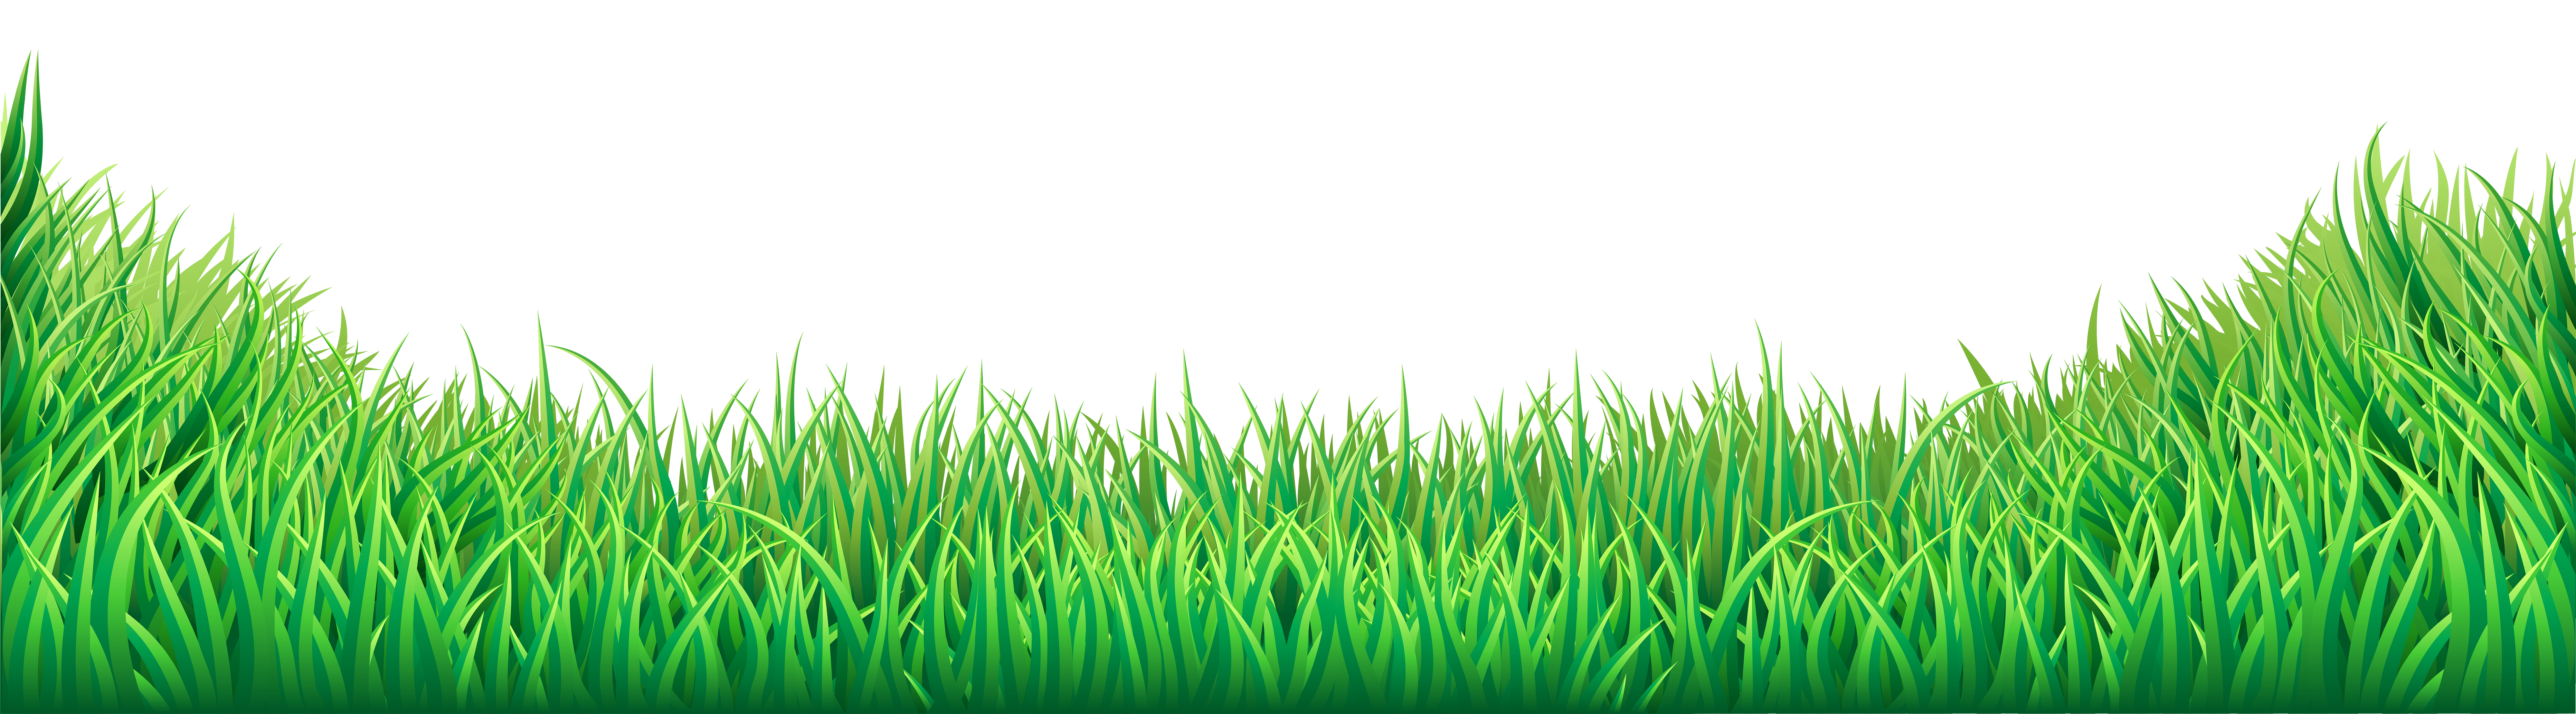 grass png transparent clip art image gallery yopriceville - Grass PNG